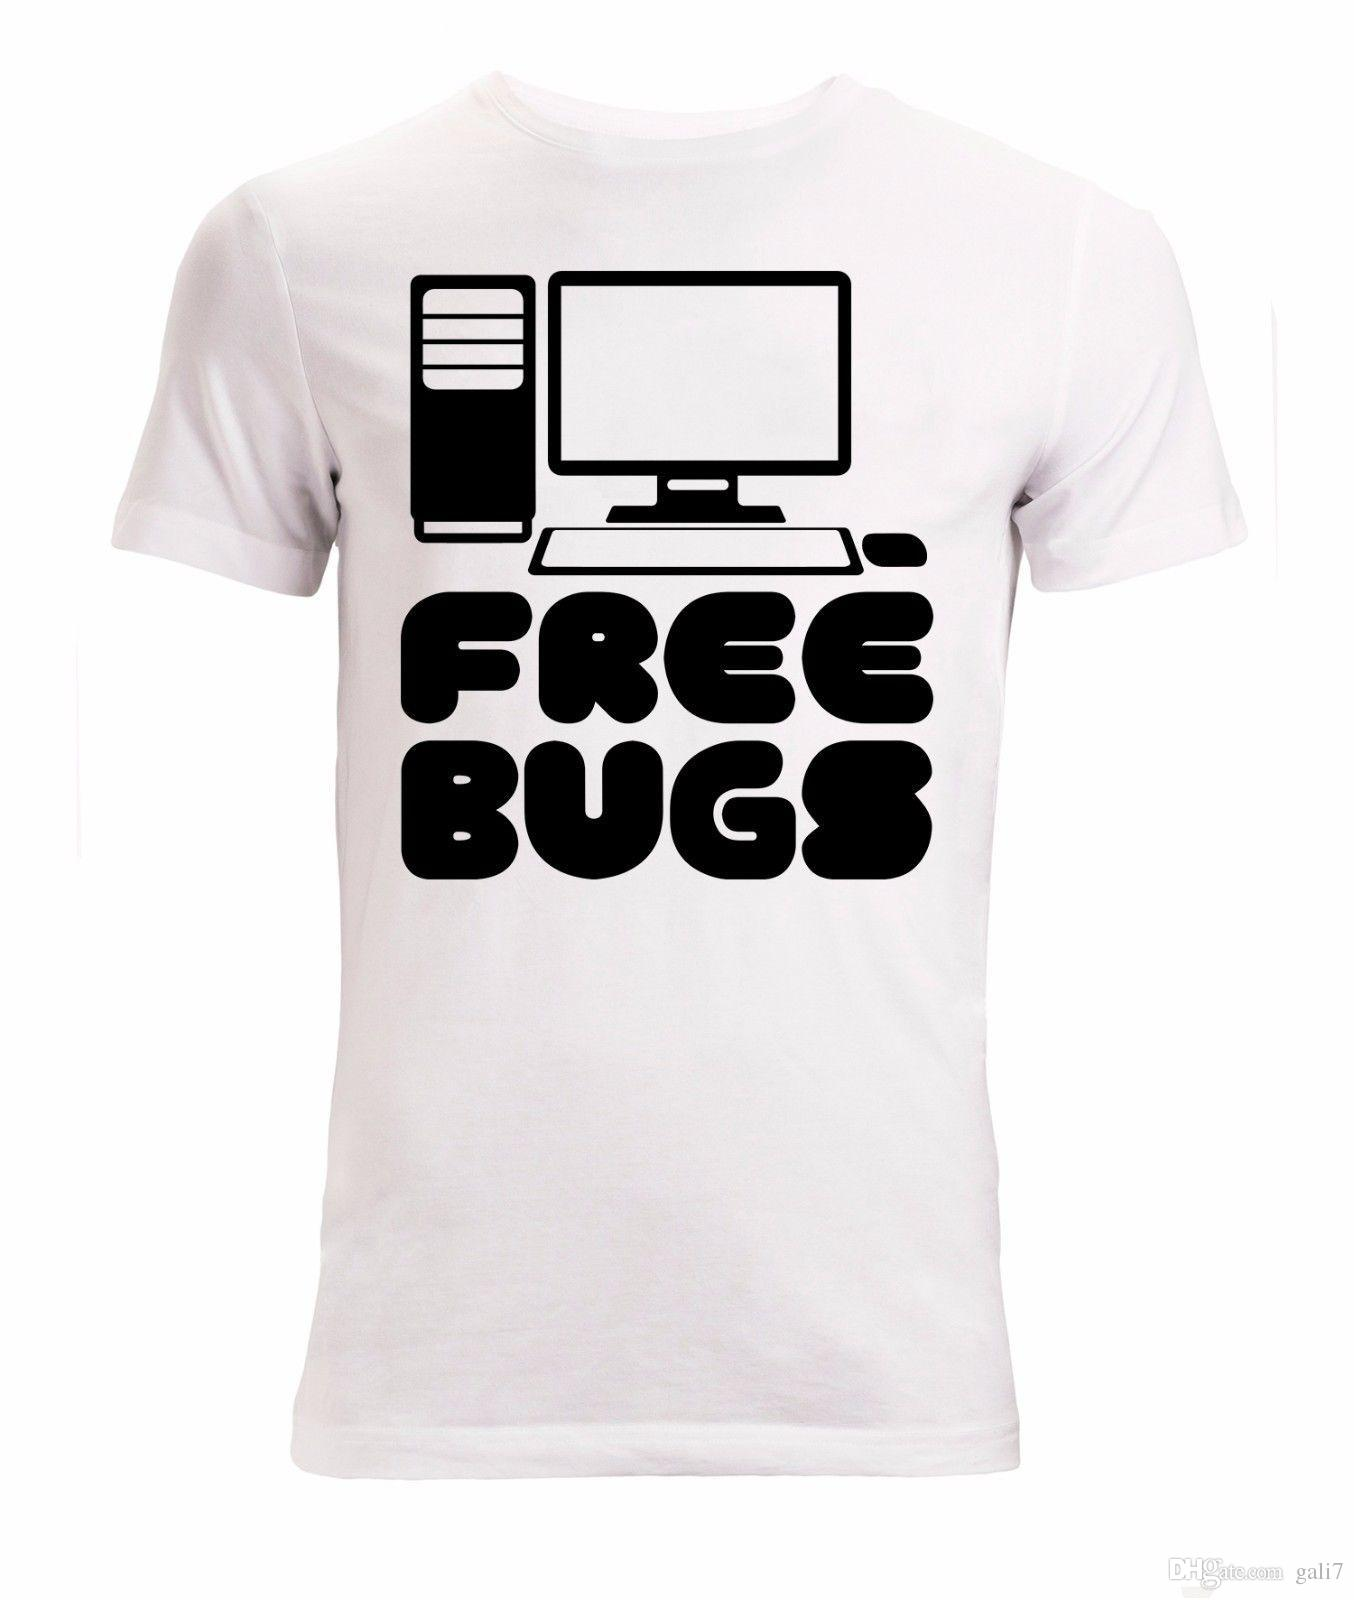 Free Design Software For T Shirts Dreamworks